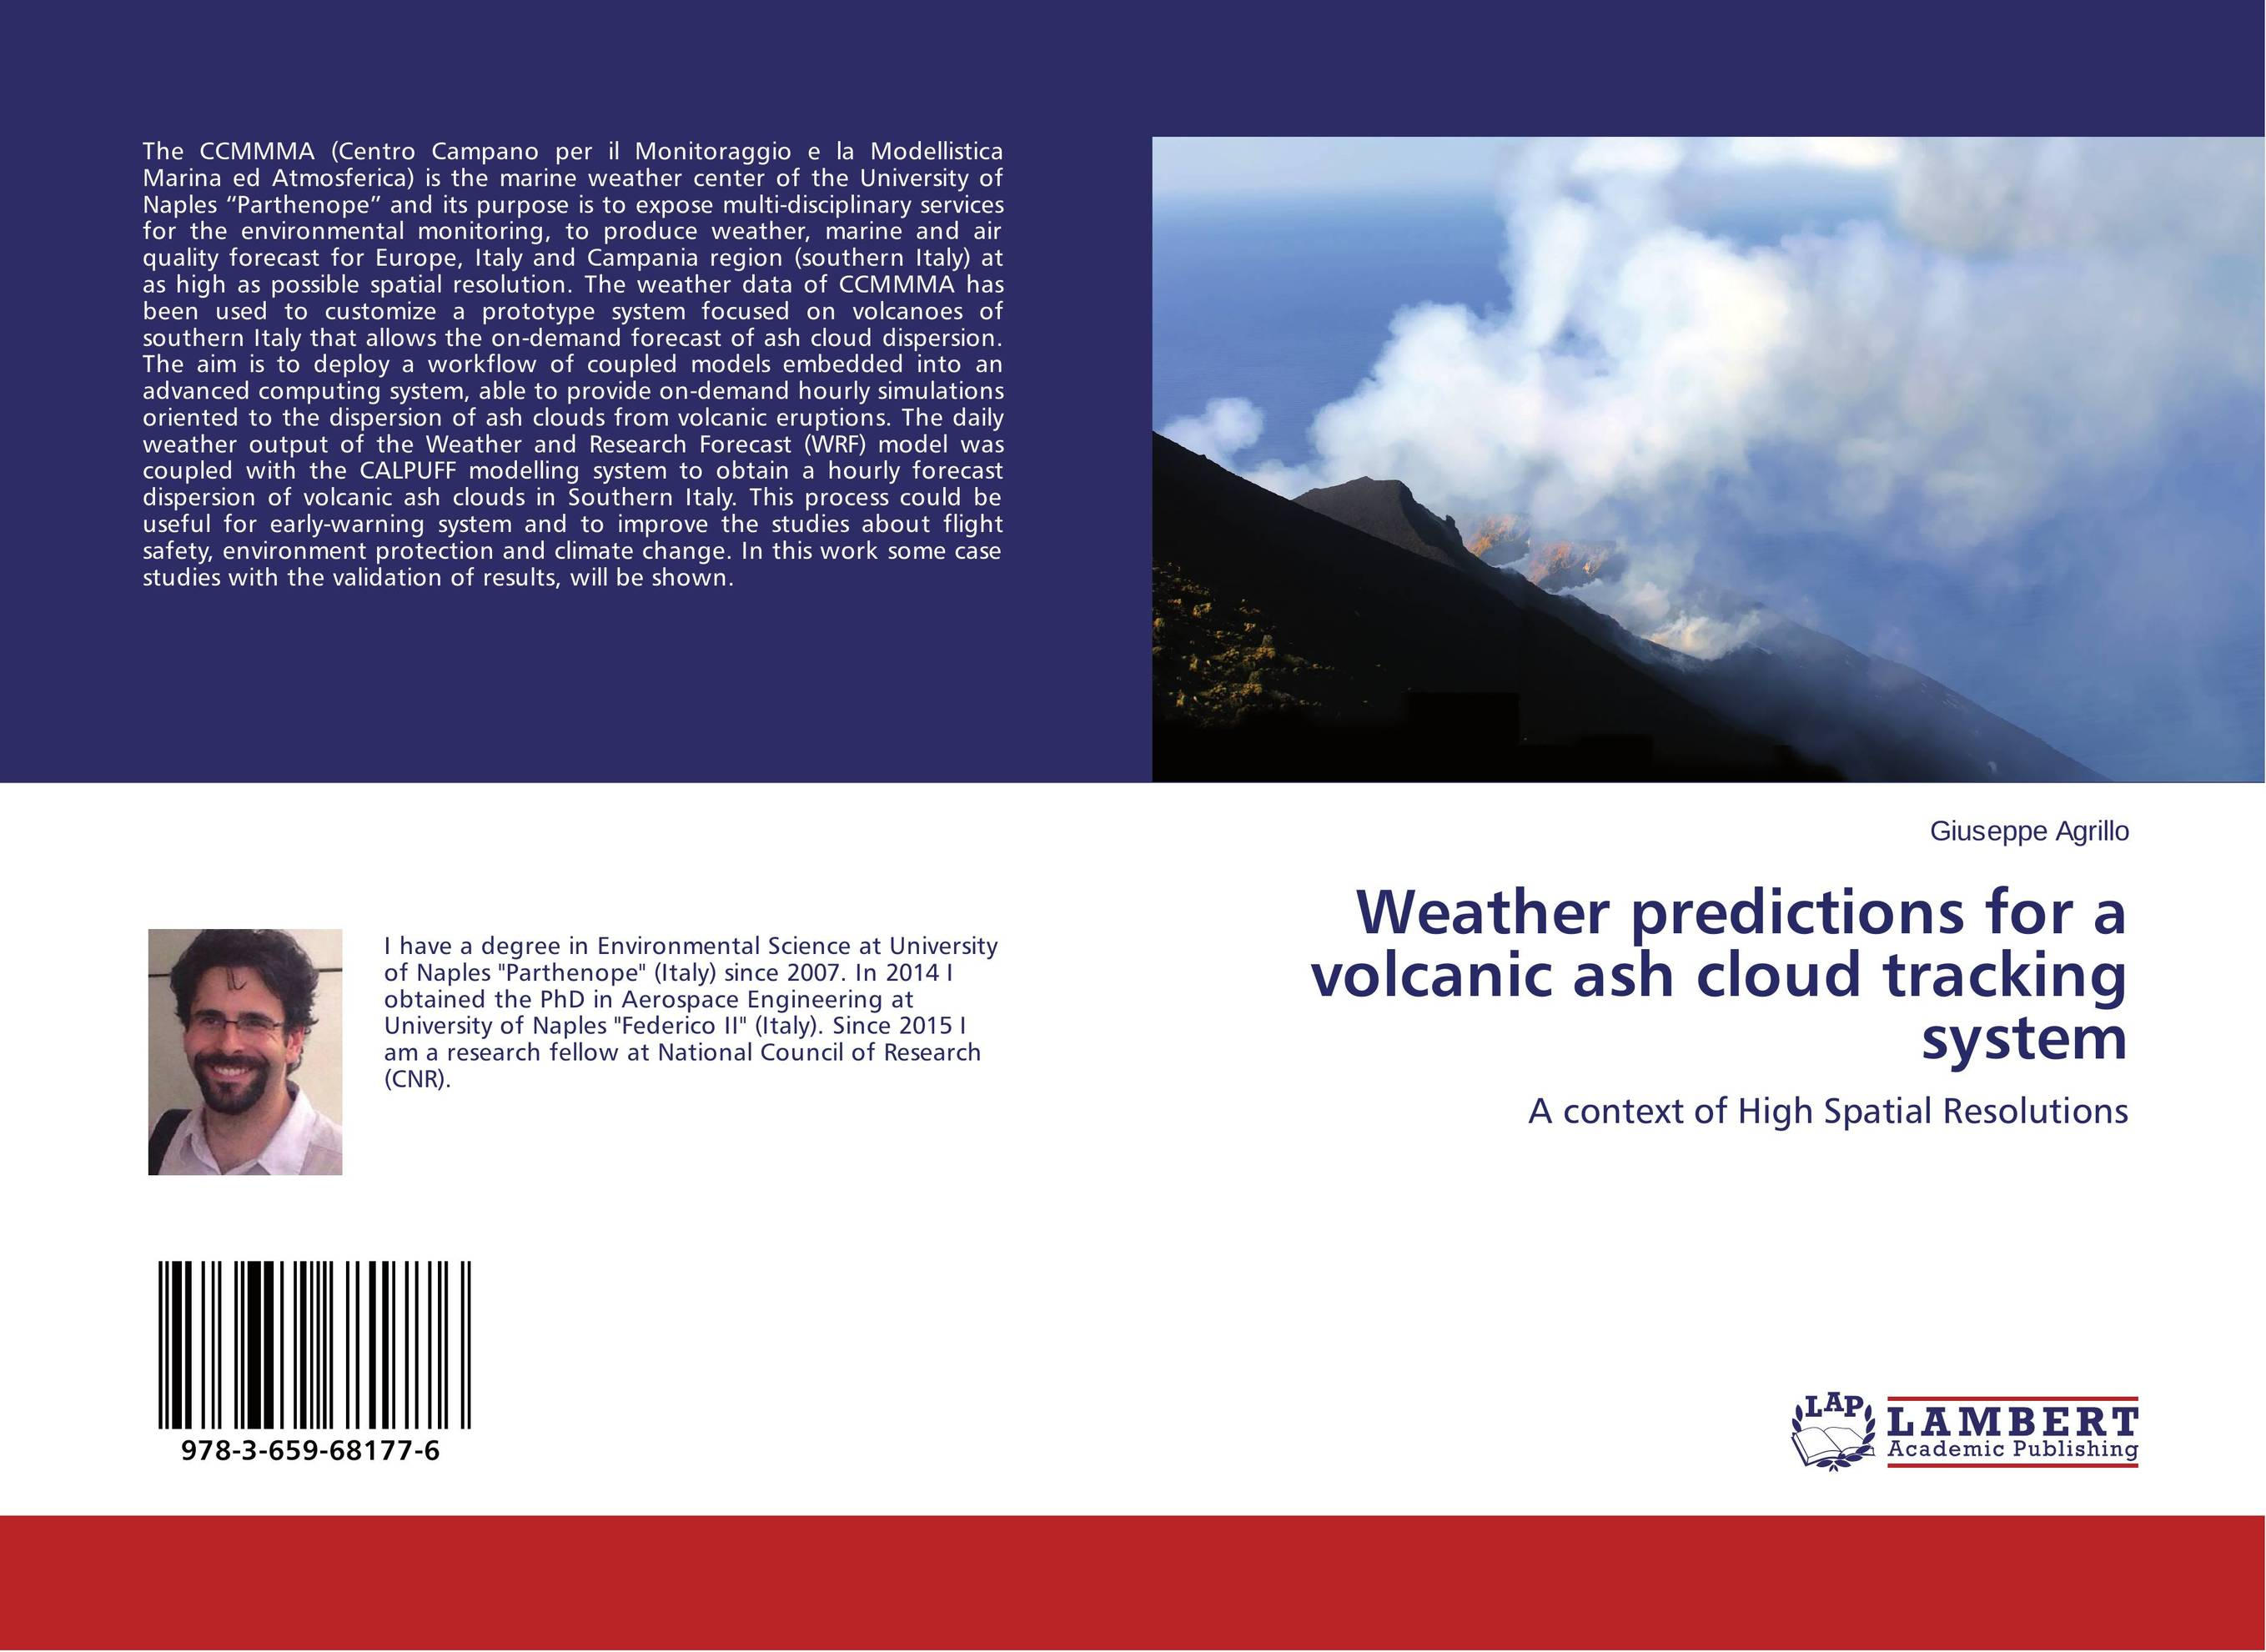 Weather predictions for a volcanic ash cloud tracking system